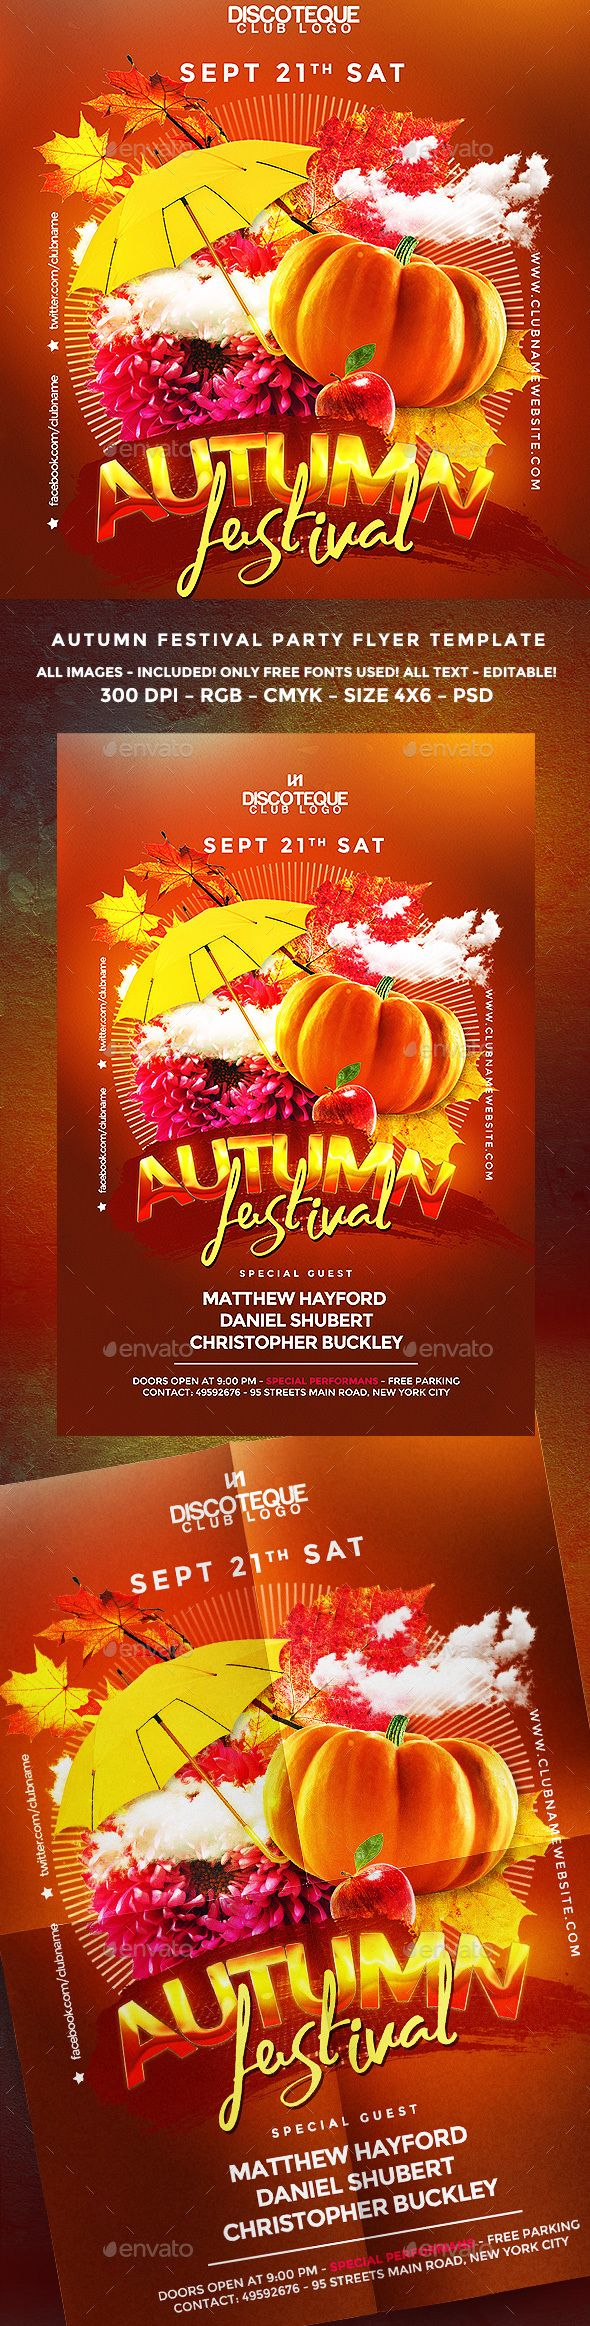 Fall Festival Flyer Pinterest Flyer Template Template And Party